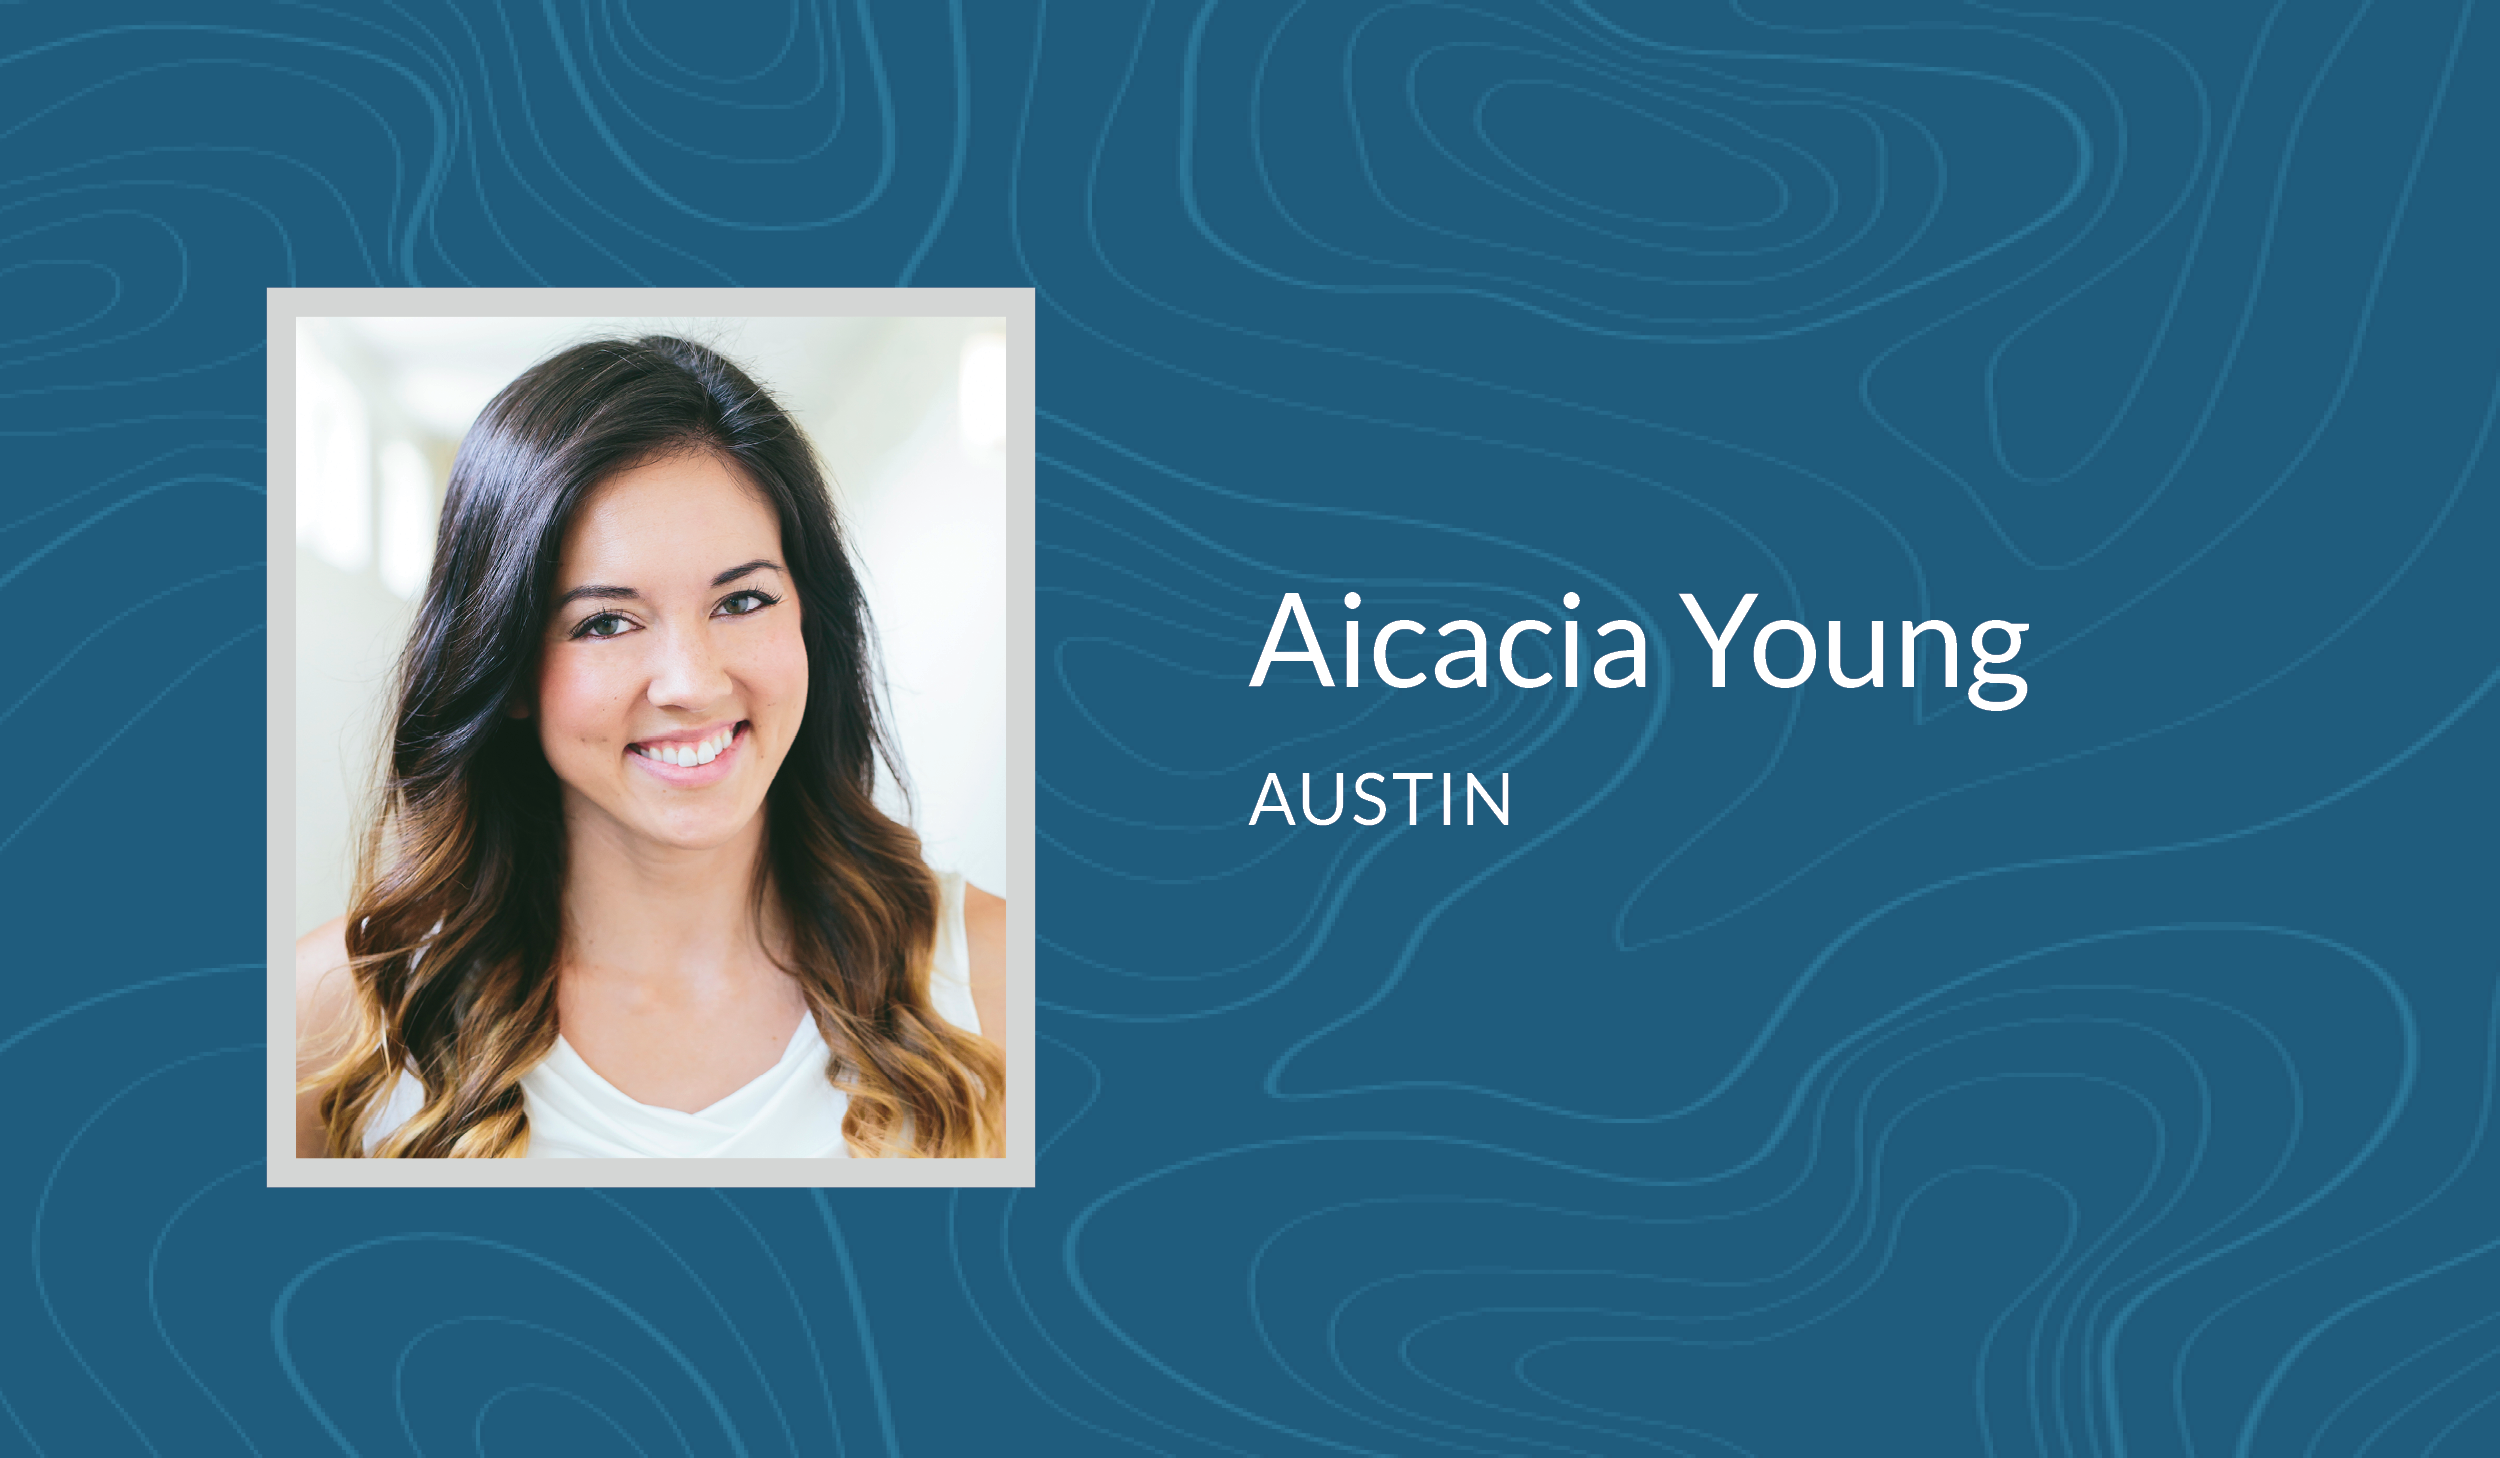 Aicacia Young Landing Page Headers.png